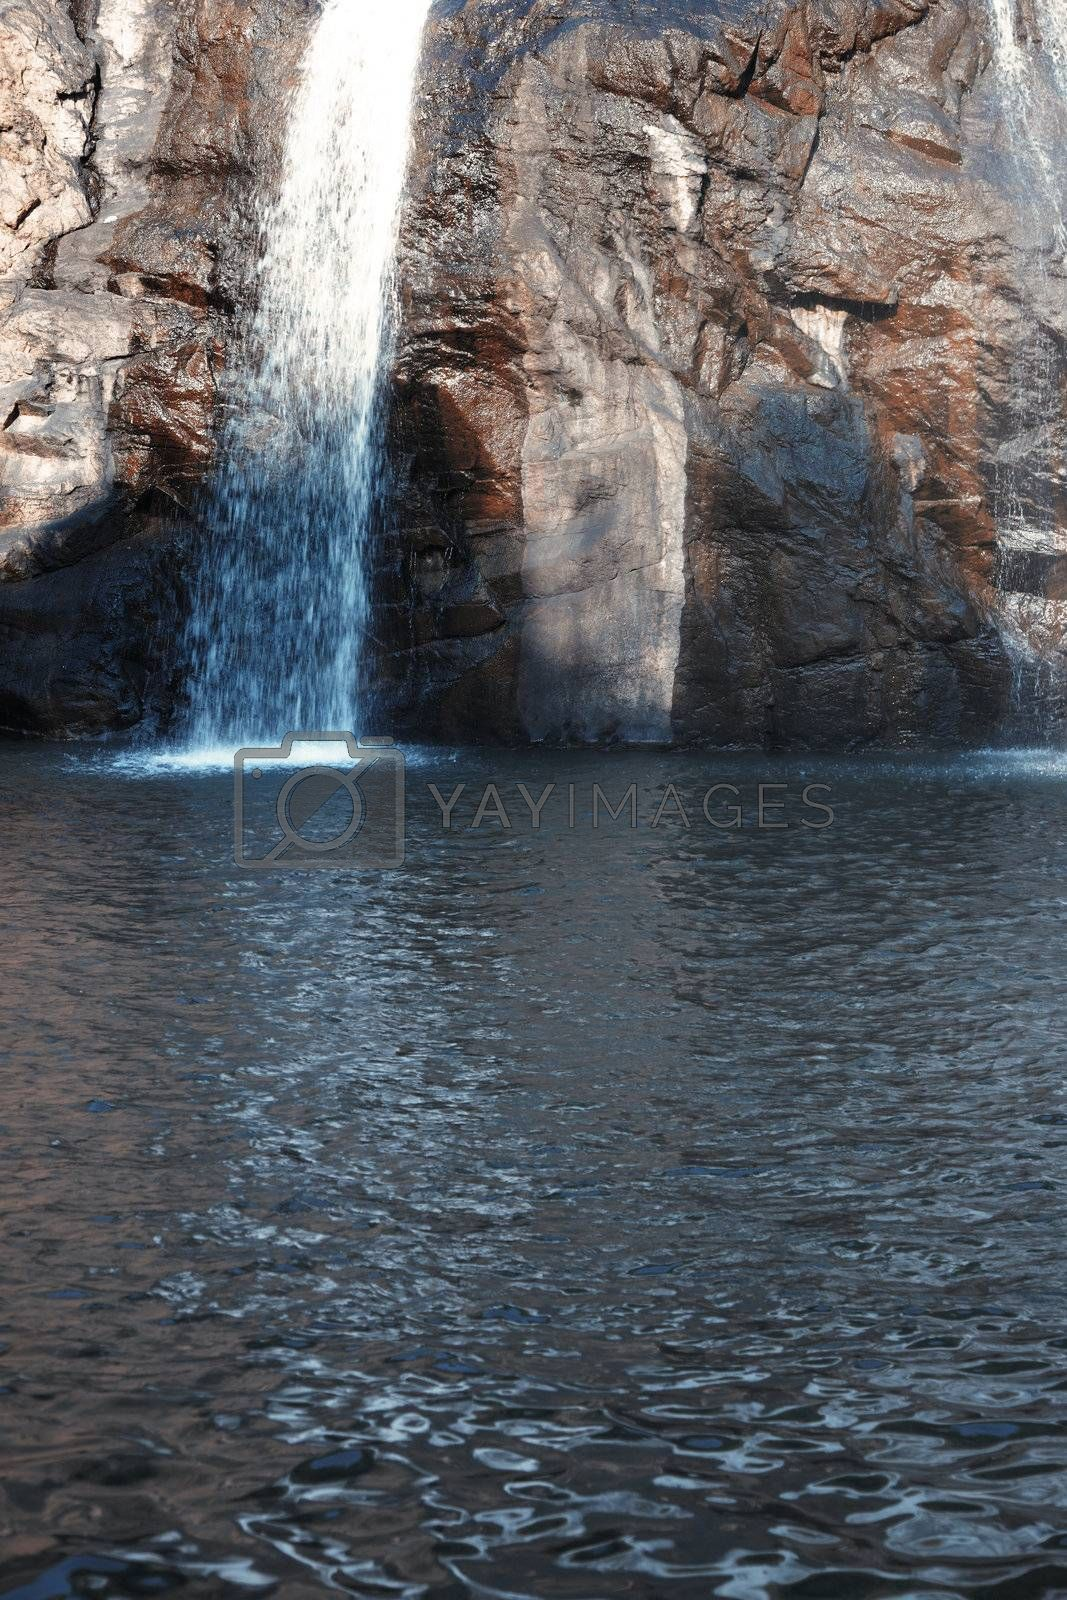 Waterfall in the rock. Vertical photo